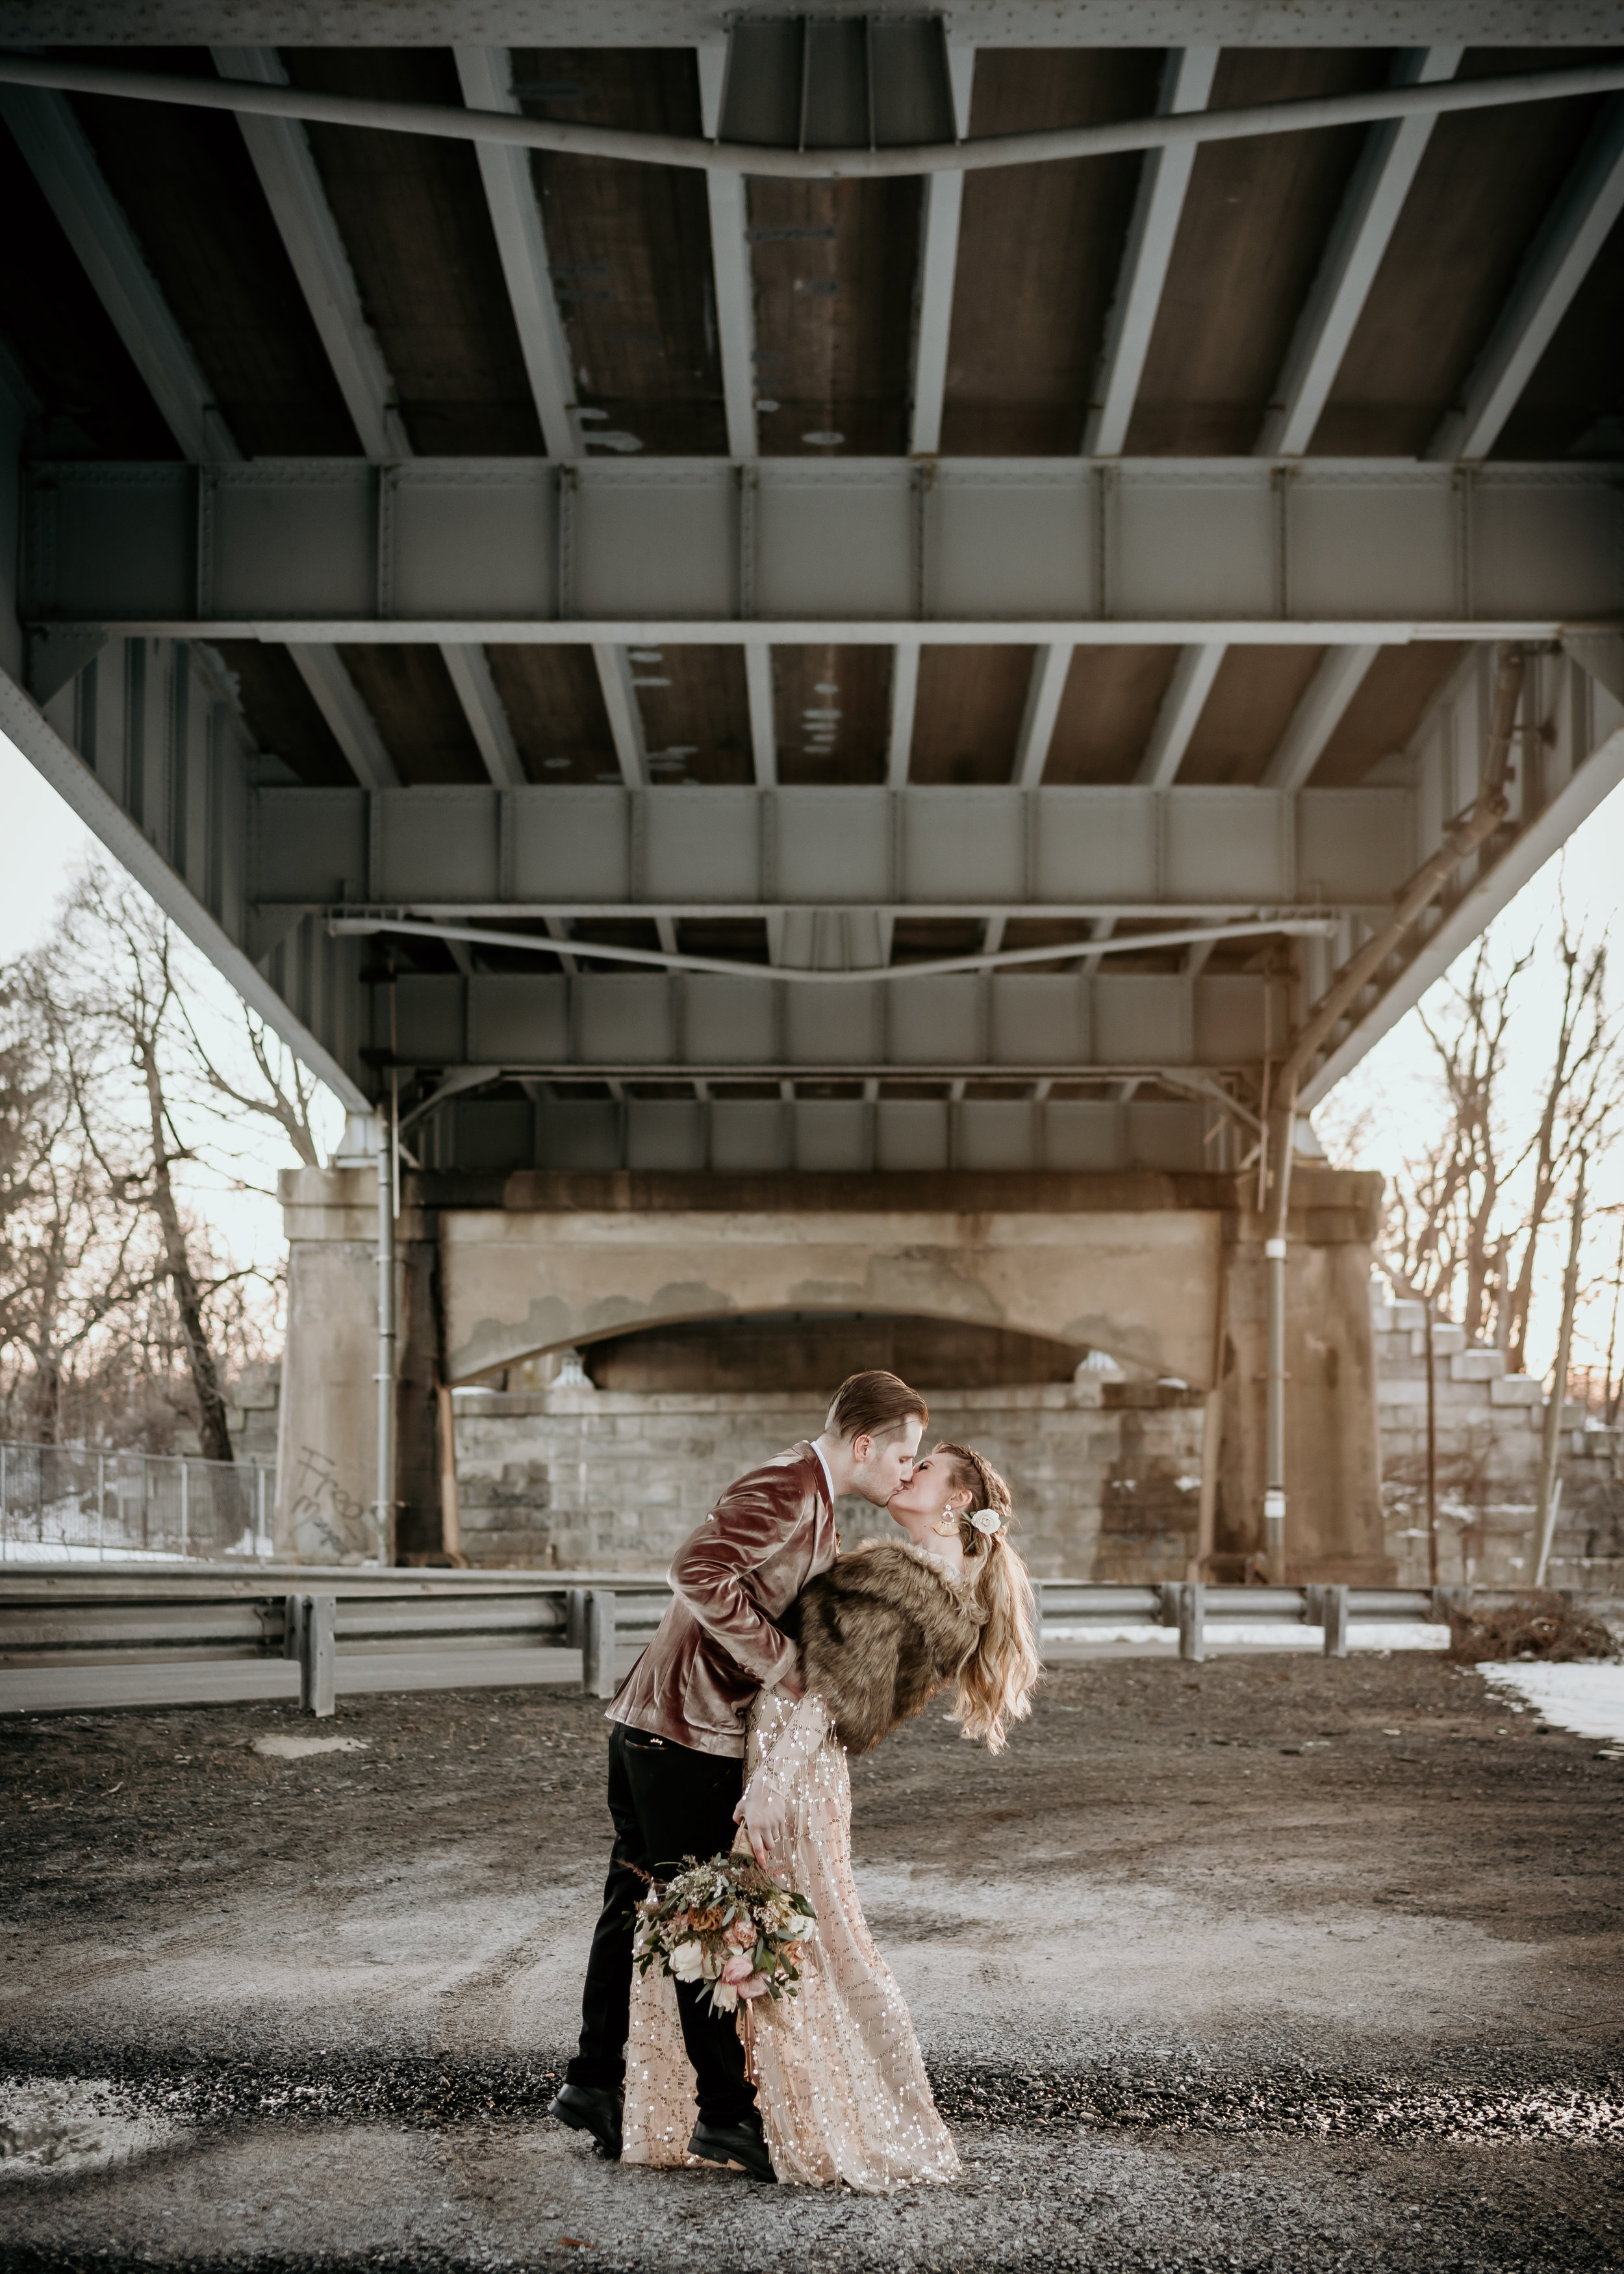 Under the bridge in Middletown, CT in the middle of winter capturing the best couple session photos - Pearl Weddings & Events